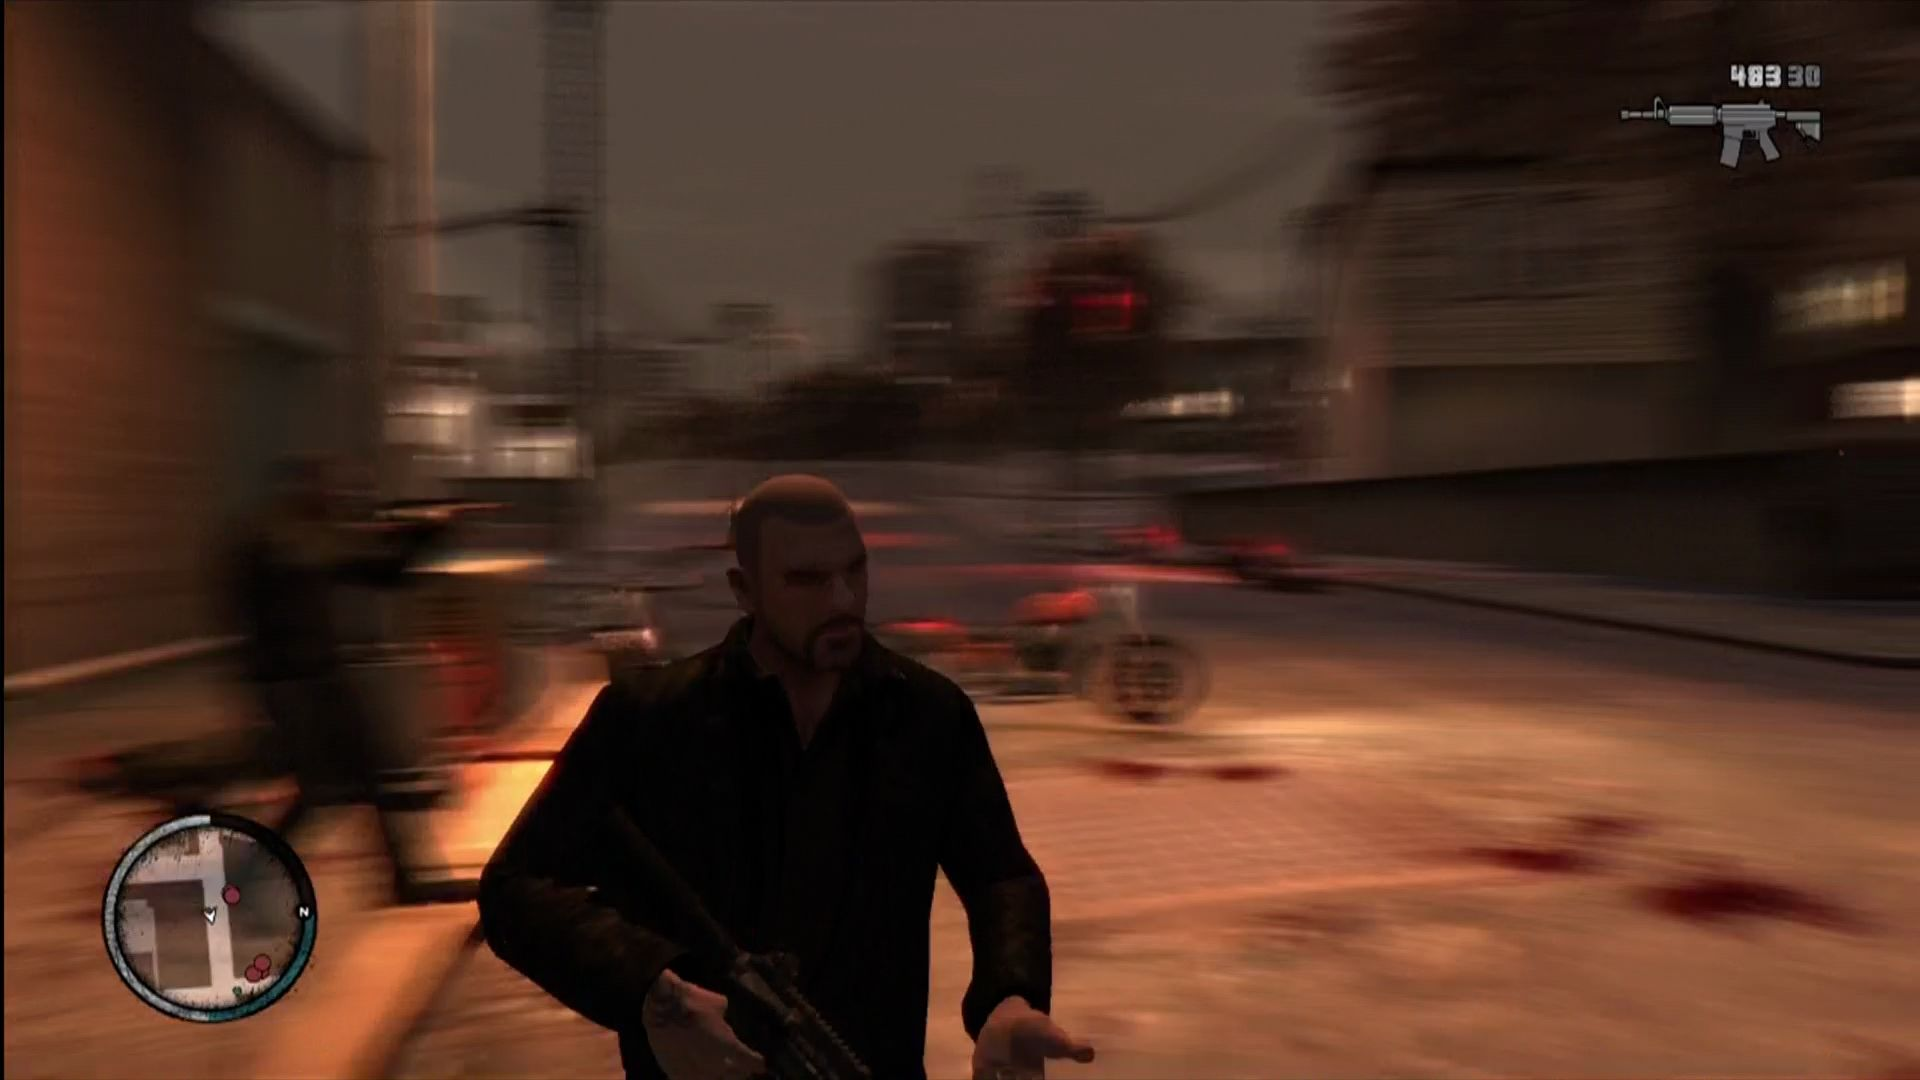 Grand Theft Auto IV: The Lost and Damned Xbox 360 Heavy use of motion blur for dramatic effect.